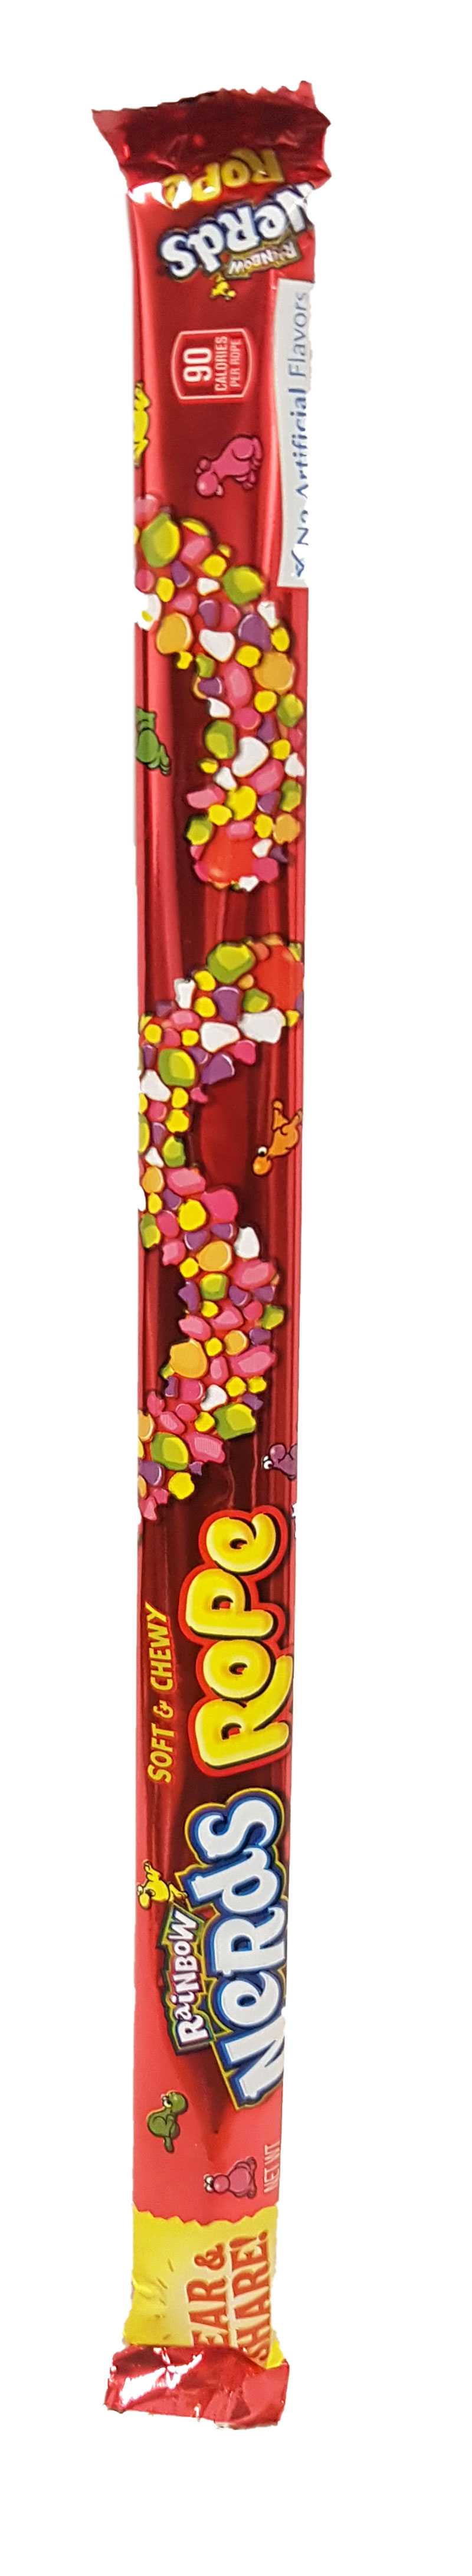 Wonka Nerds Rainbow Rope